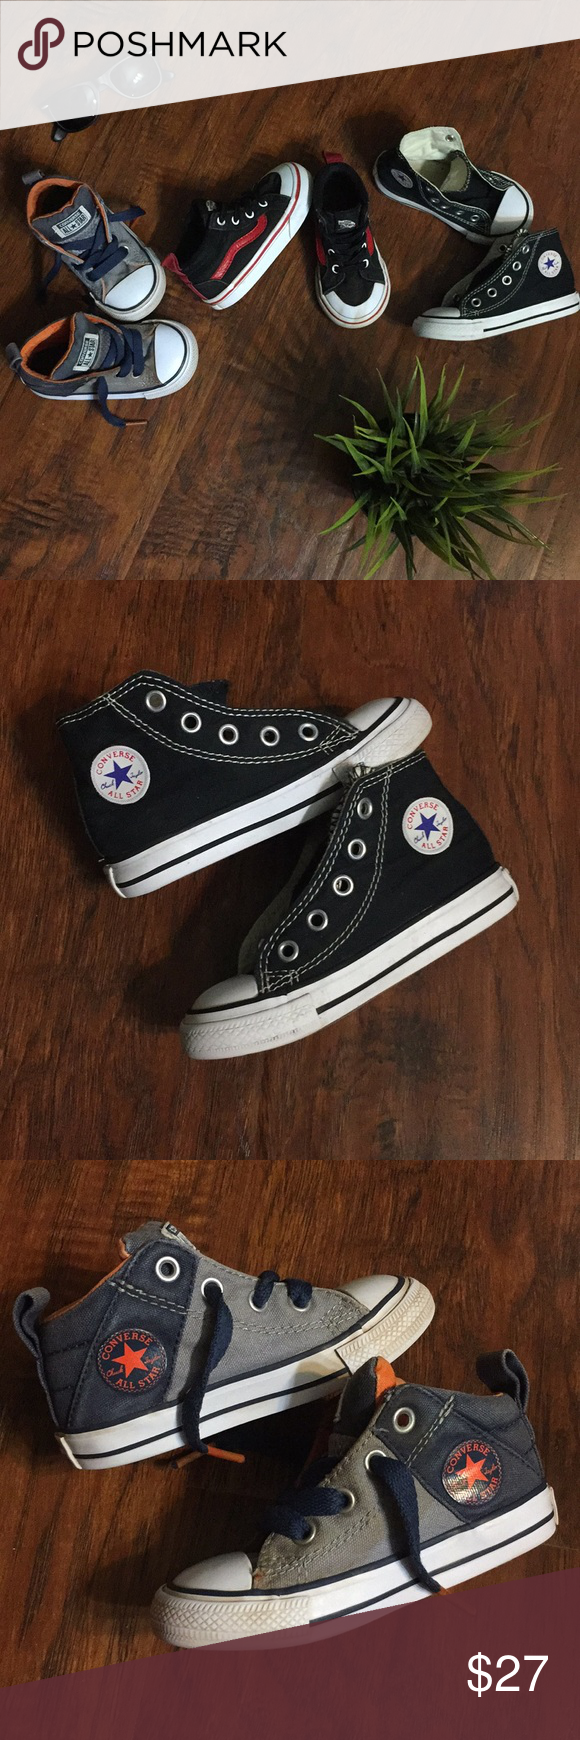 converse to vans size